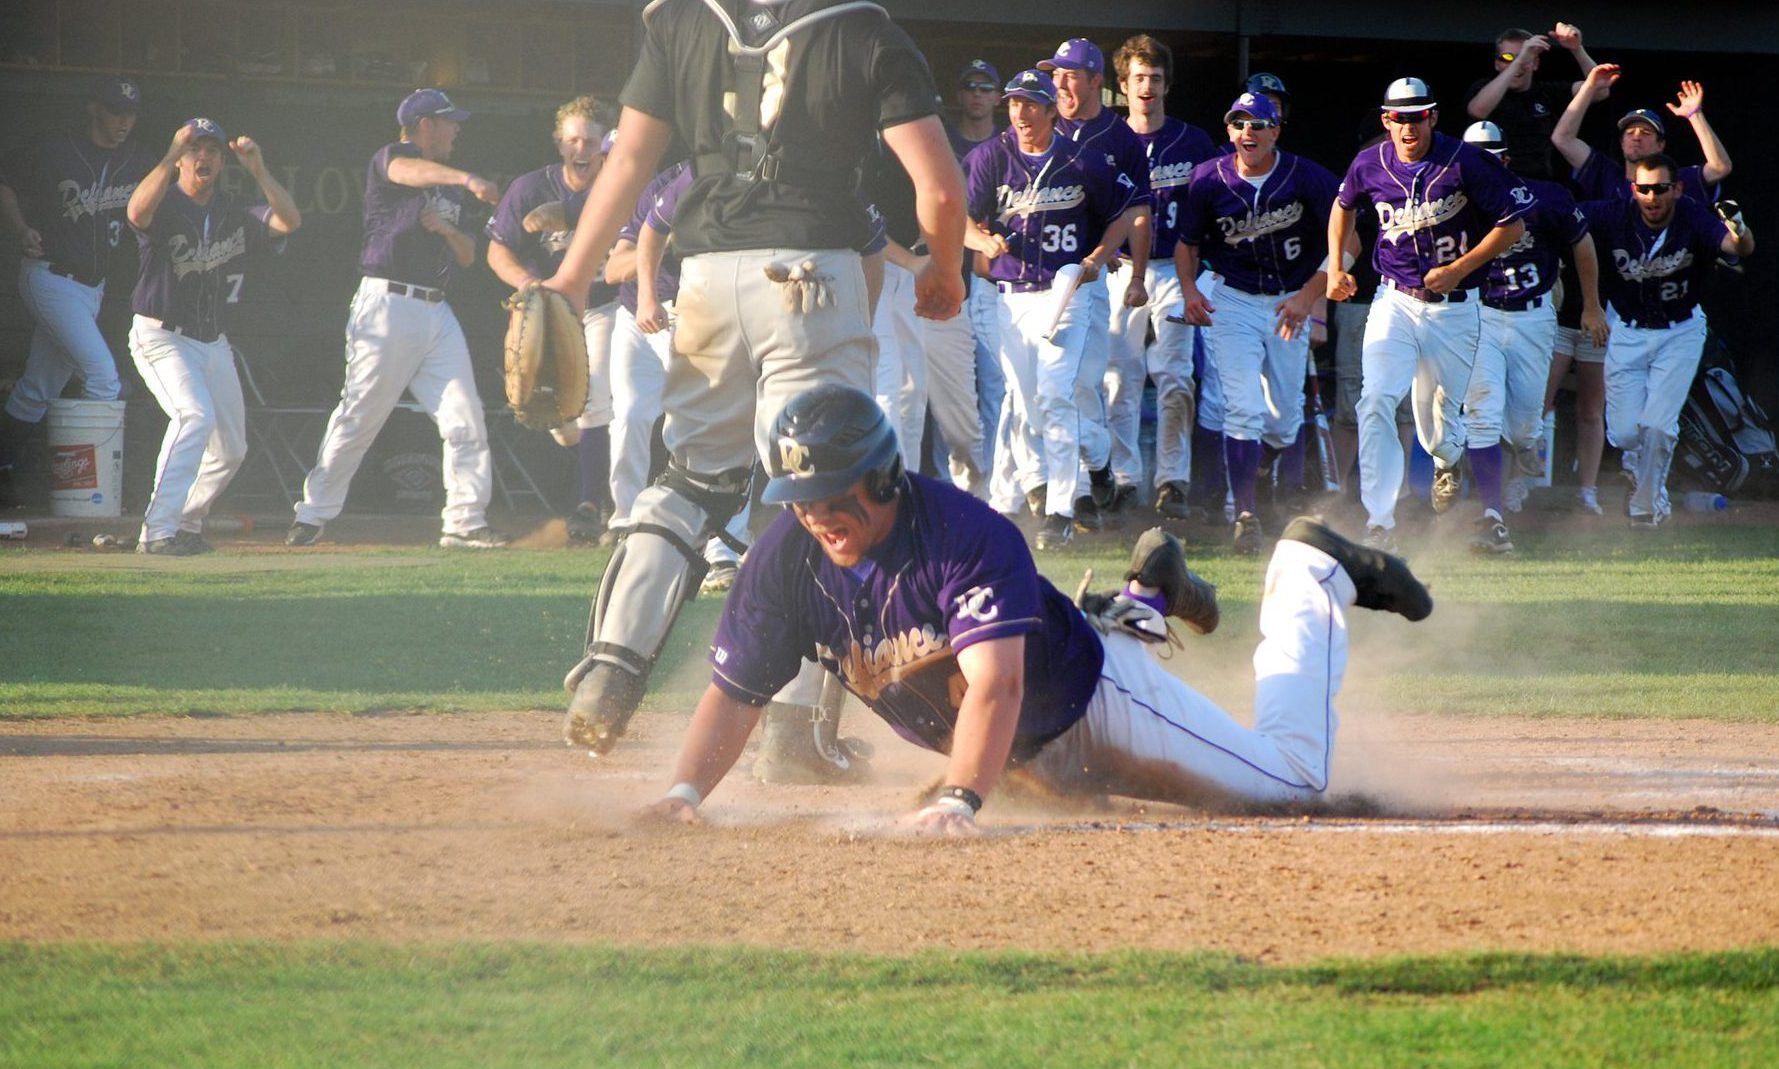 Defiance College baseball player sliding into home plate